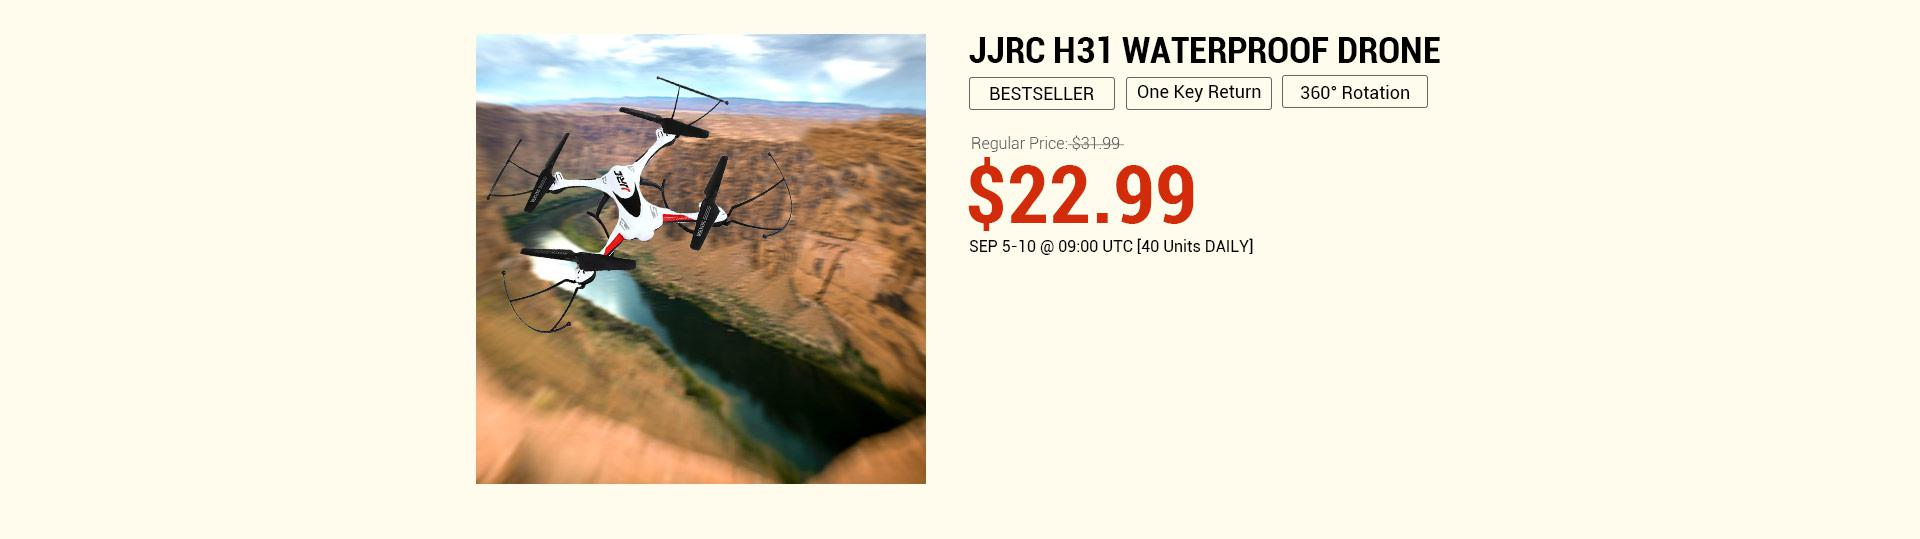 JJRC H31 Flash Sale